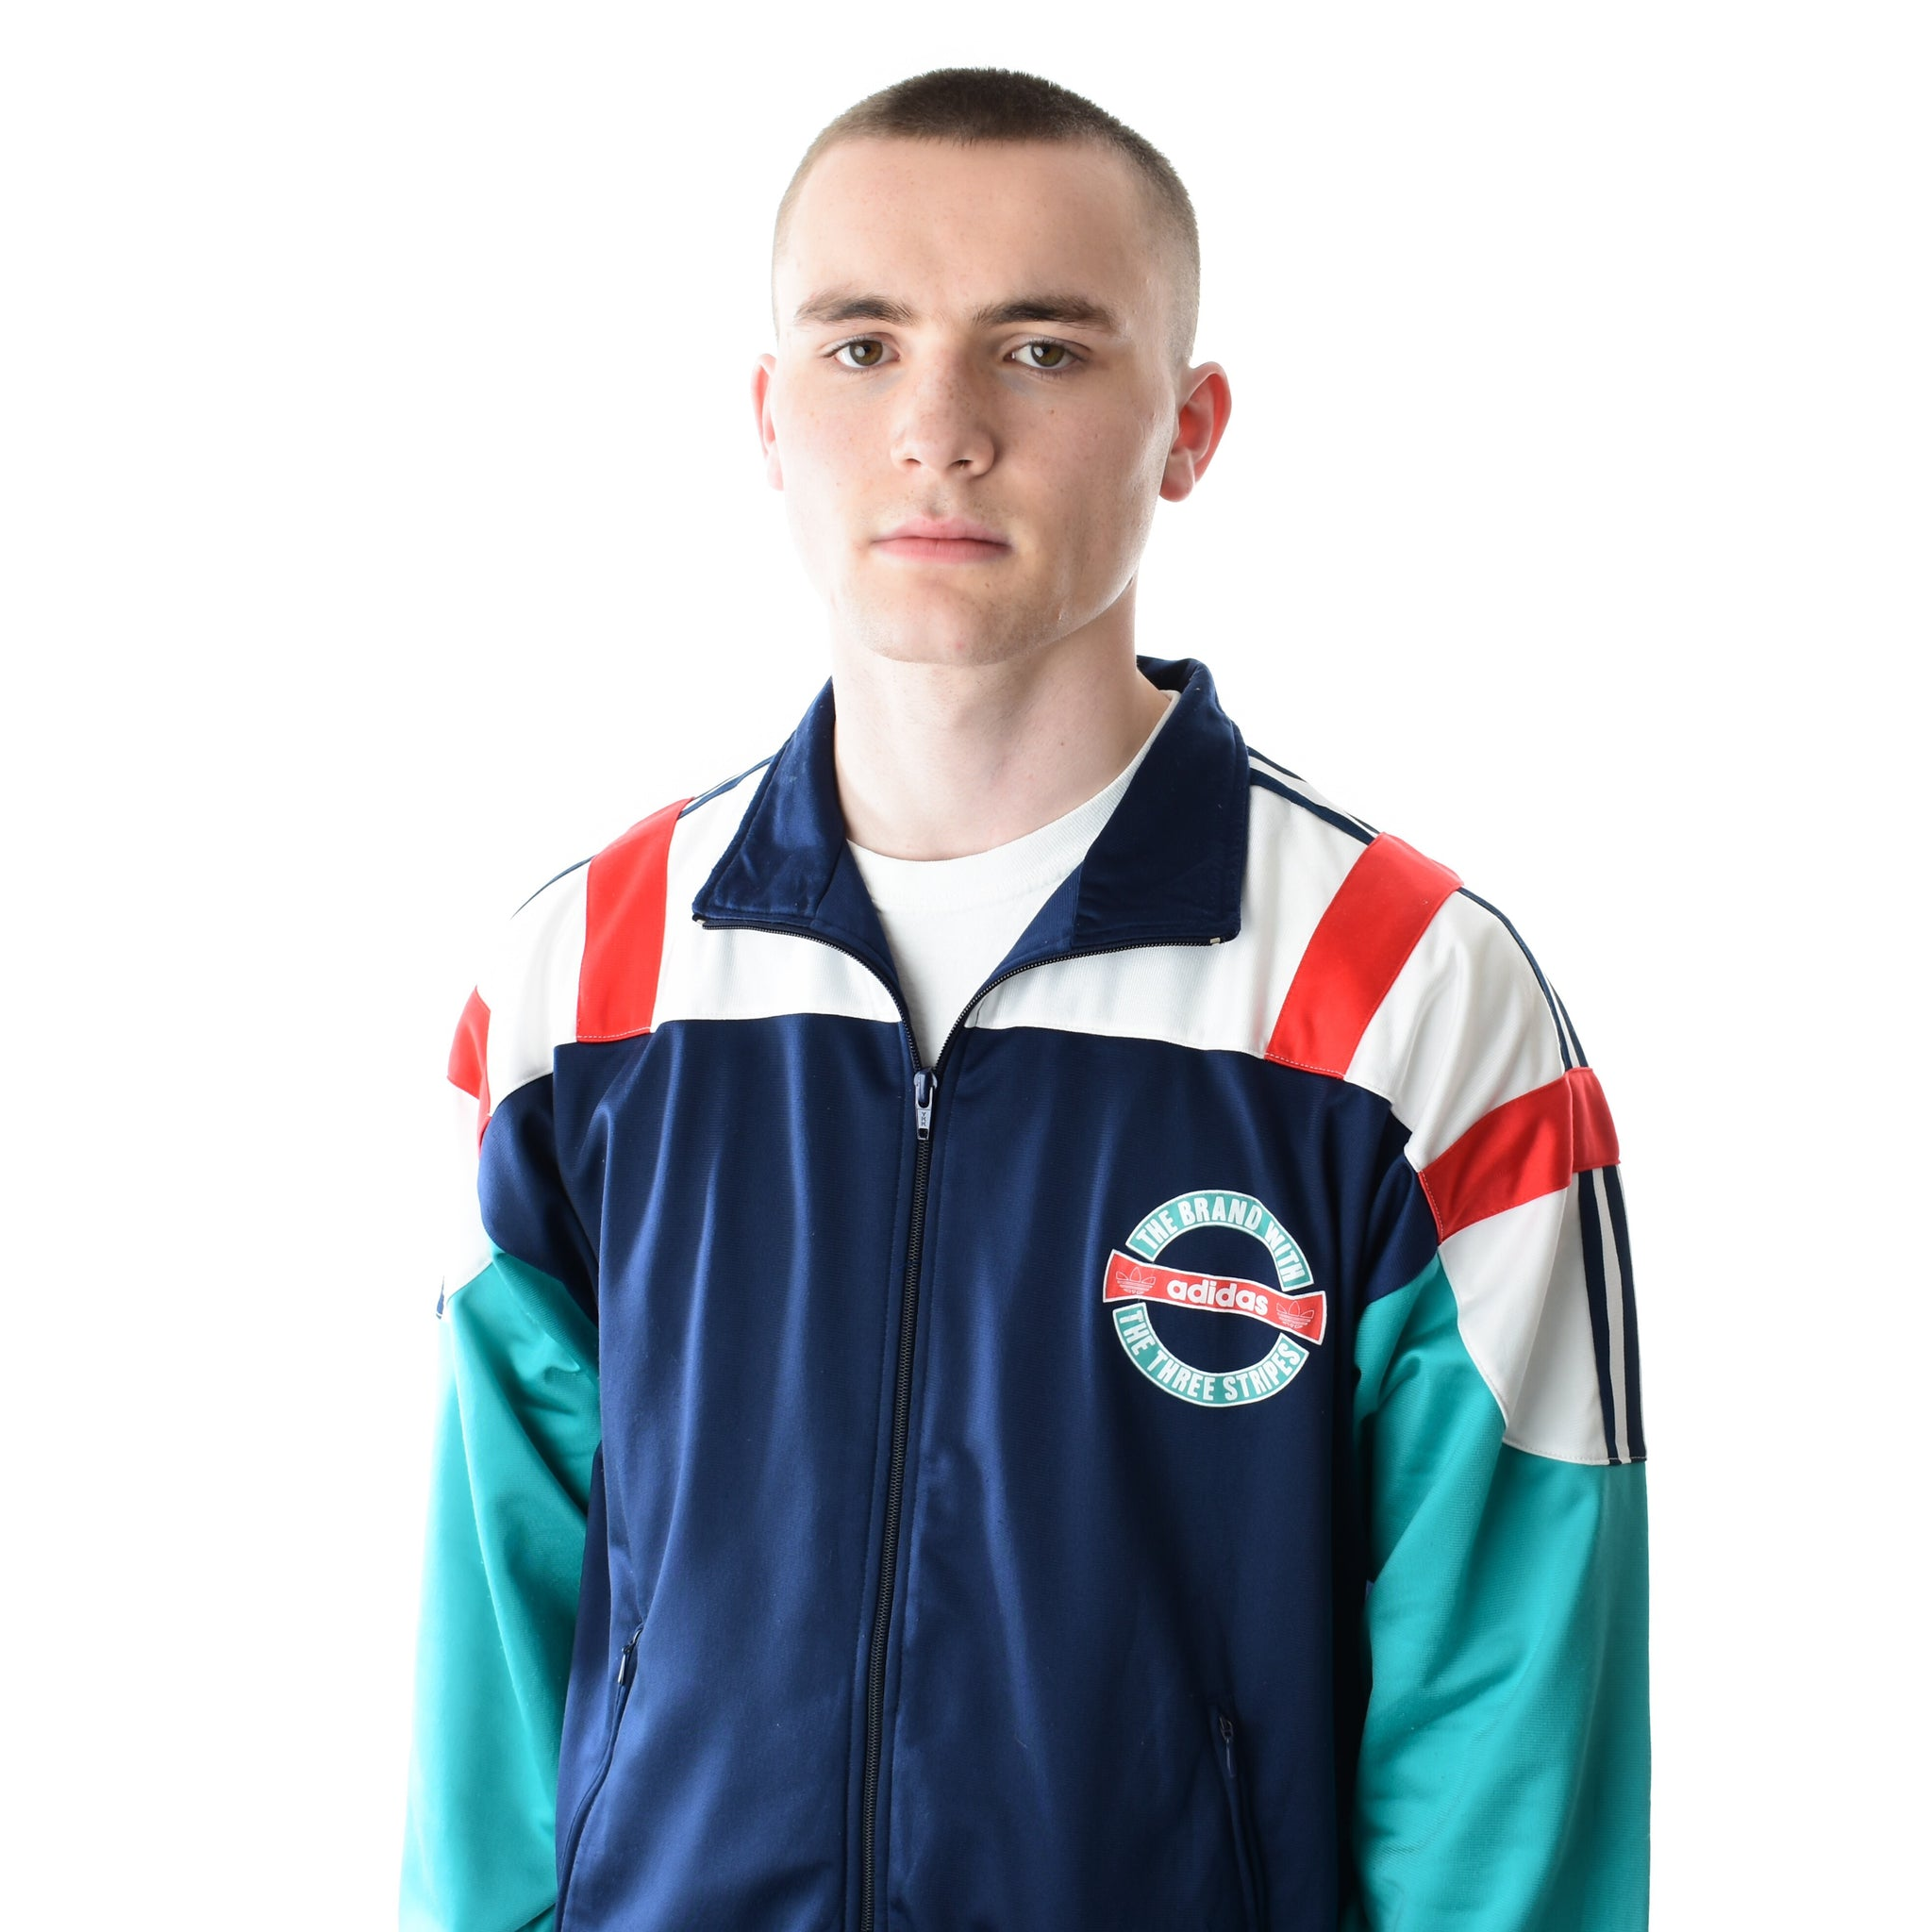 77b24f64 Load image into Gallery viewer, Retro 90s Adidas Track Jacket | Navy/White/  ...